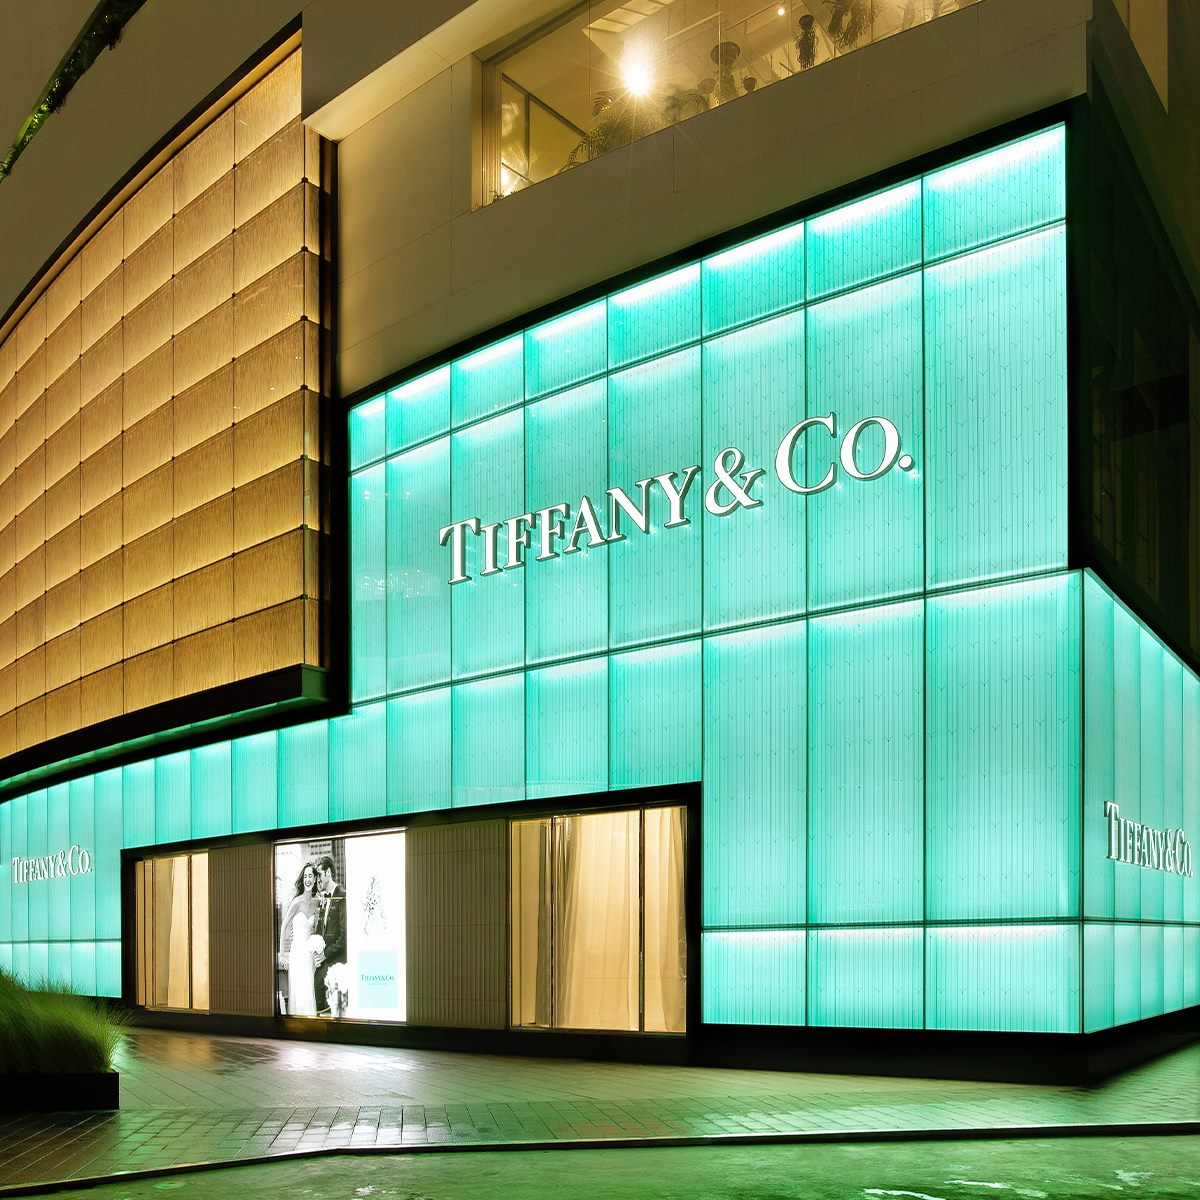 Tiffany posts strong sales growth in China, appoints new directors